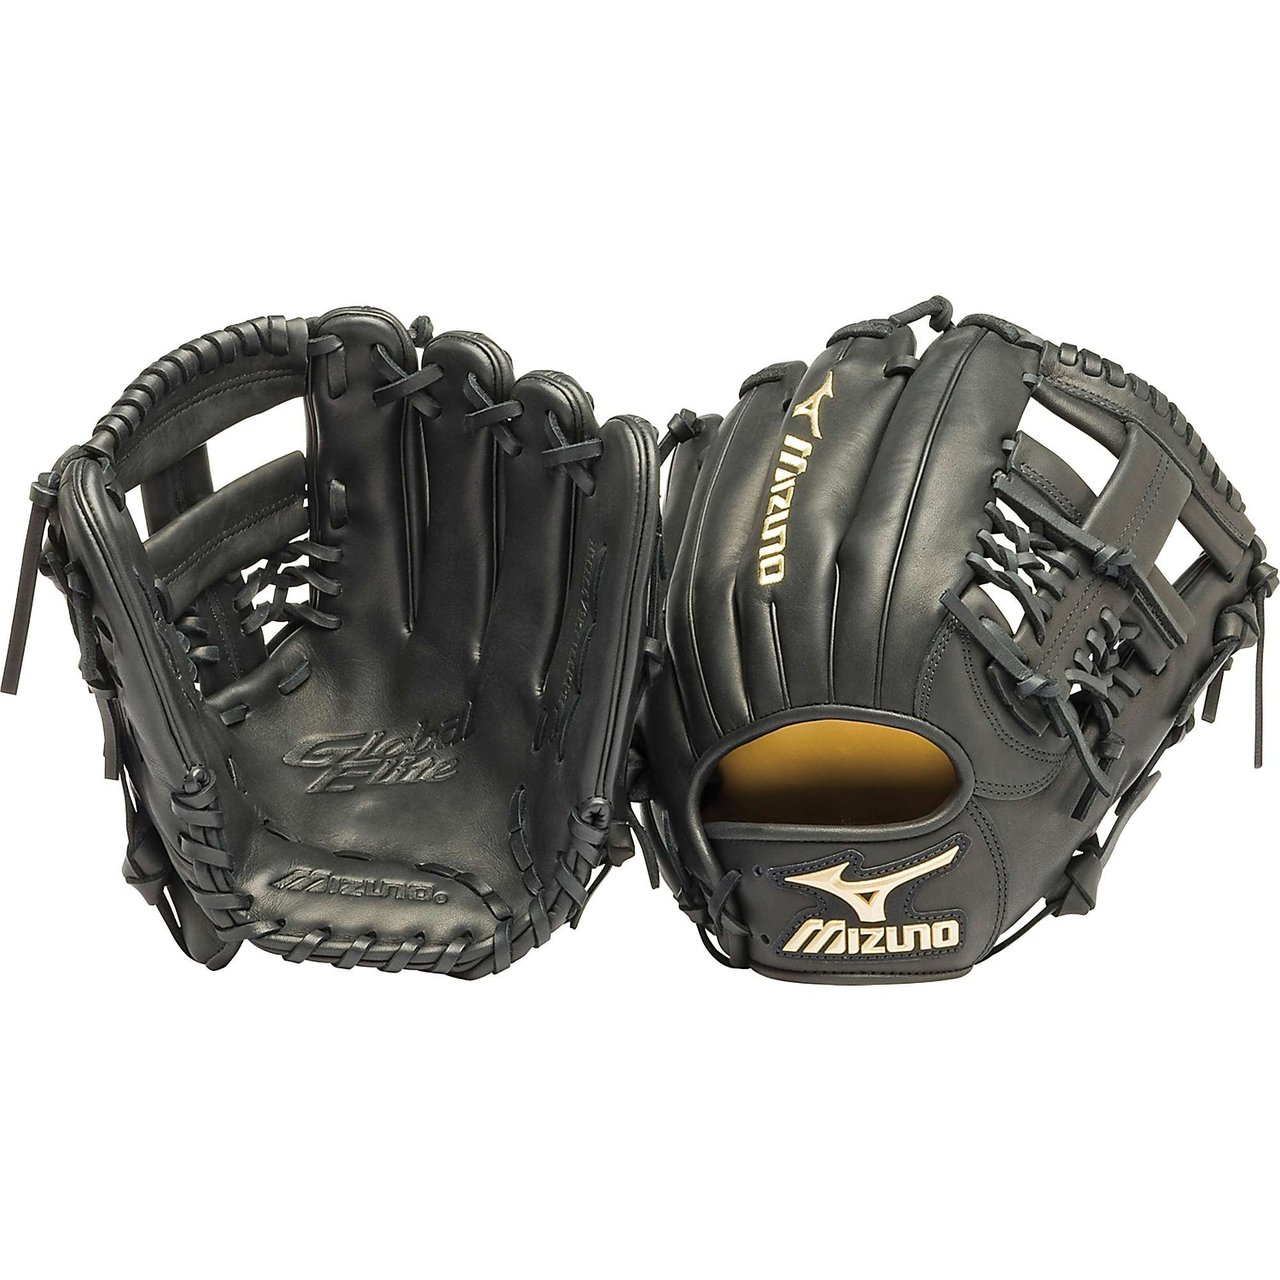 mizuno-gge50-global-elite-baseball-glove-11-75-inch-right-handed-throw GGE50-Right Handed Throw Mizuno 041969262054 11.75 GGE50 infielder pattern. E-Lite Leather for soft and light performance.